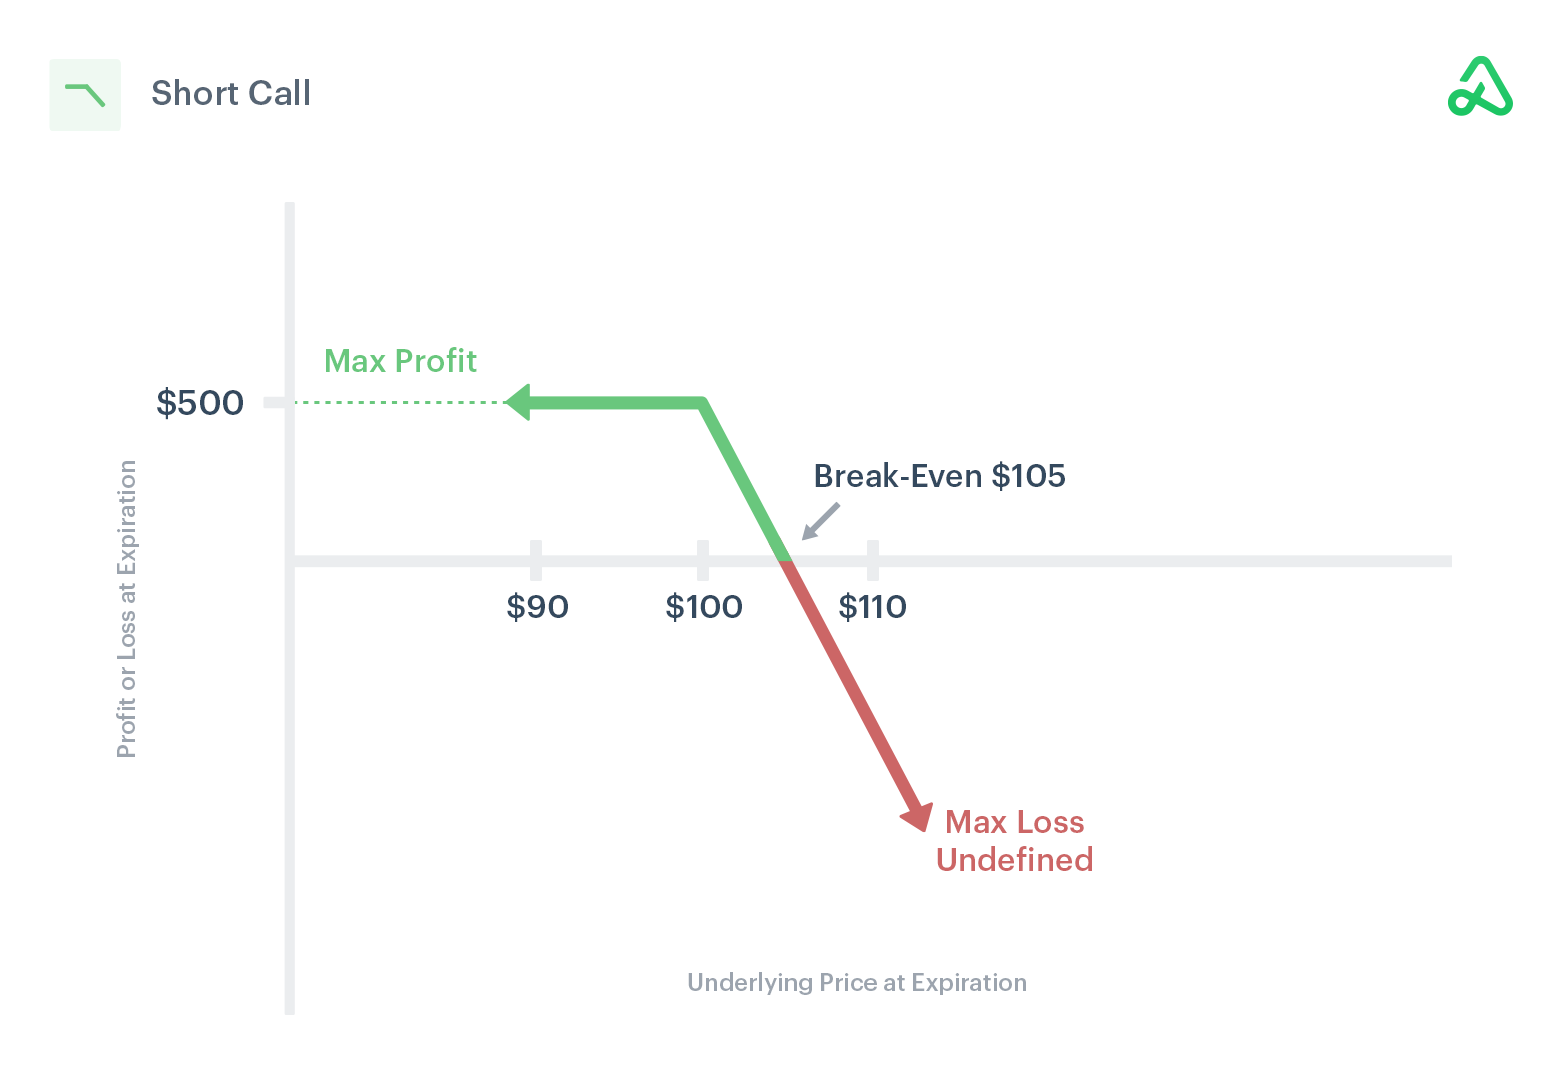 Image of short call payoff diagram showing max profit, max loss, and break-even points